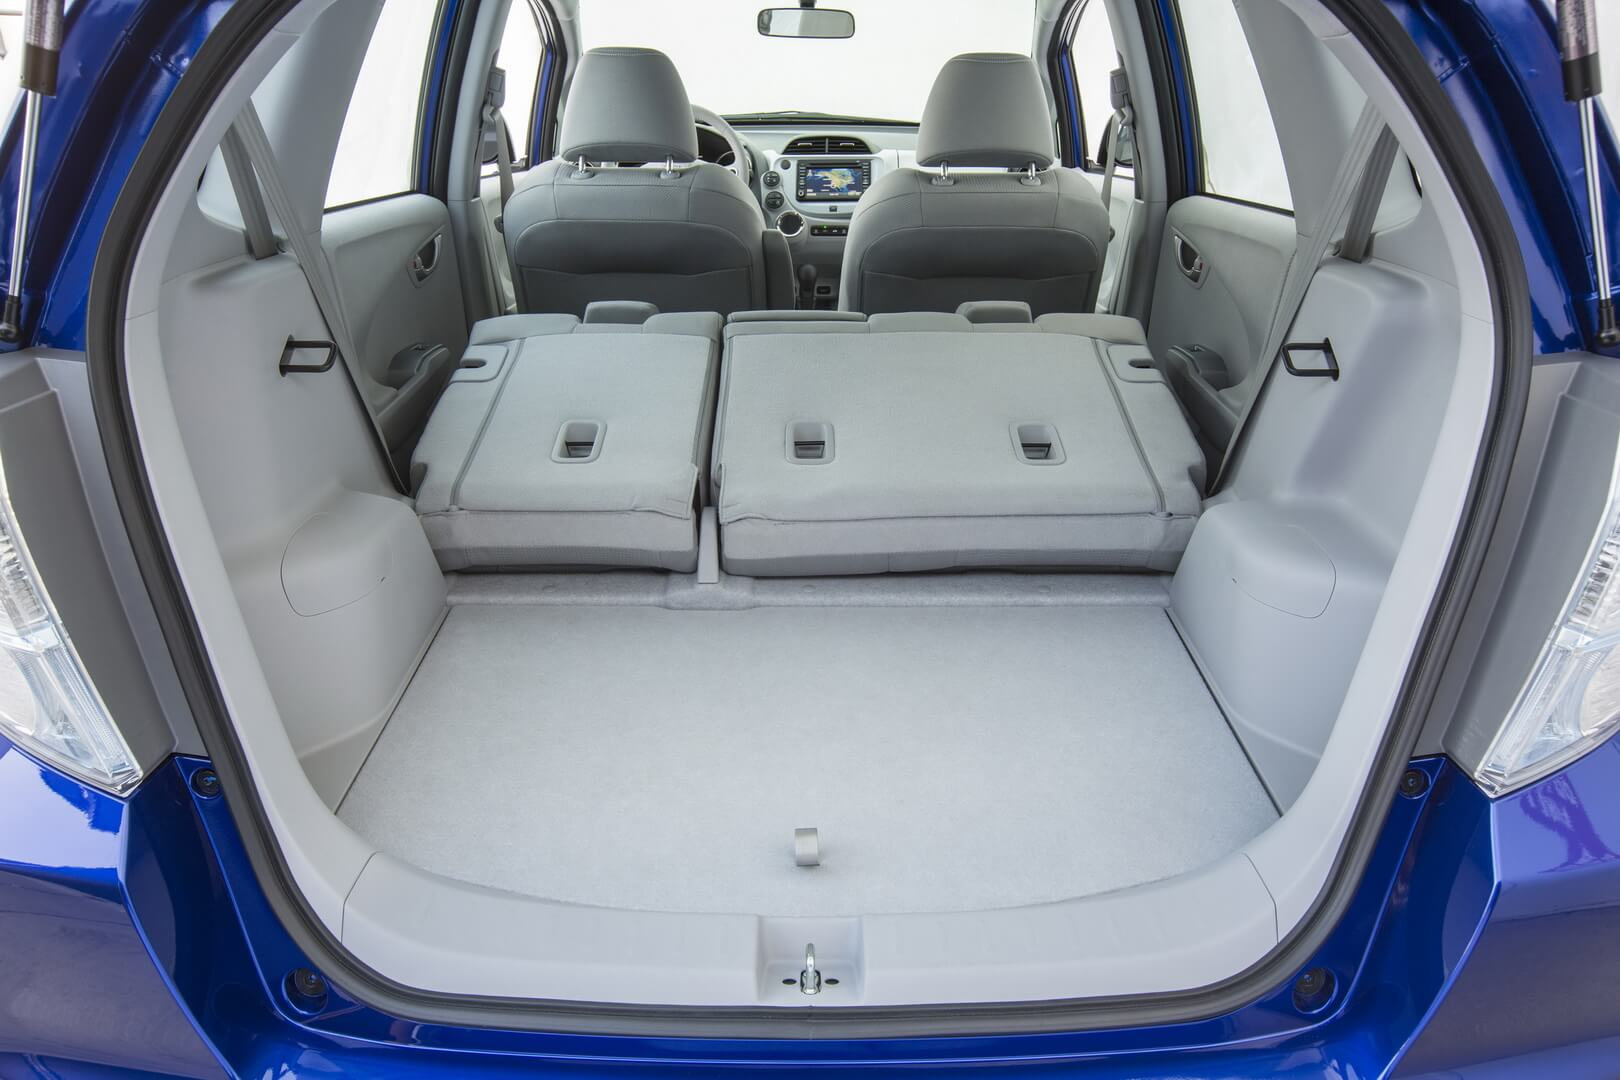 Honda Fit EV-interior-21